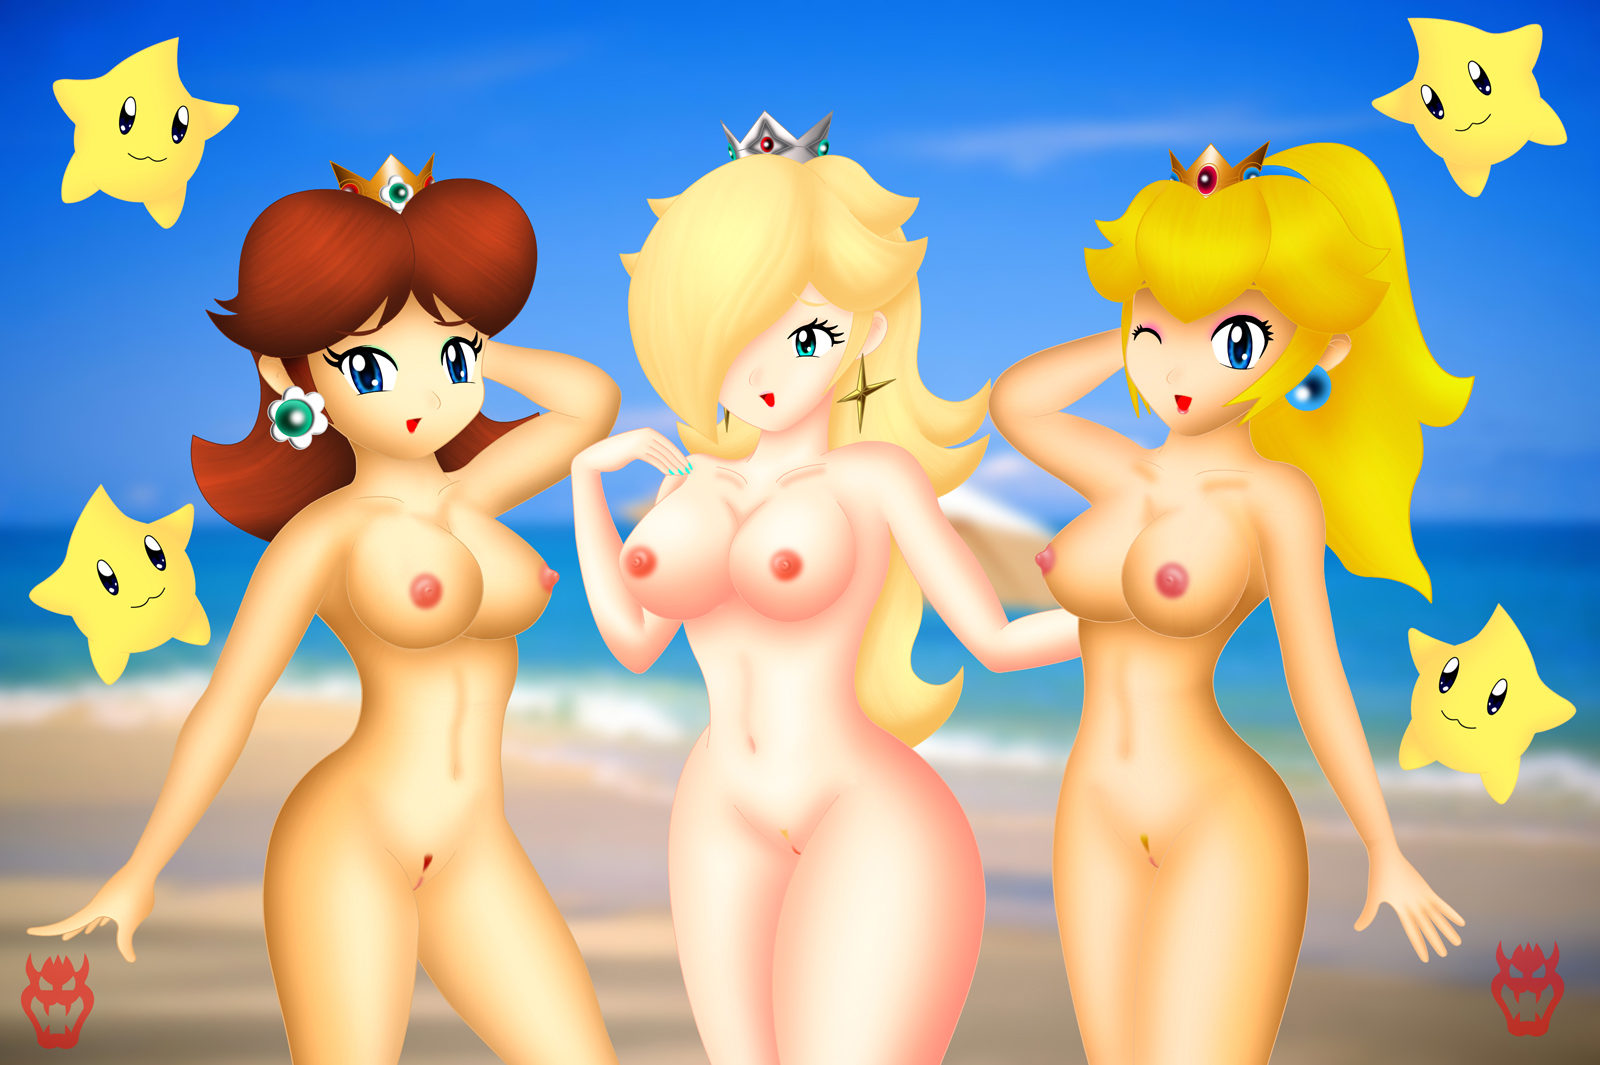 Please remarkable, Princess peach naked touching her pussy well!